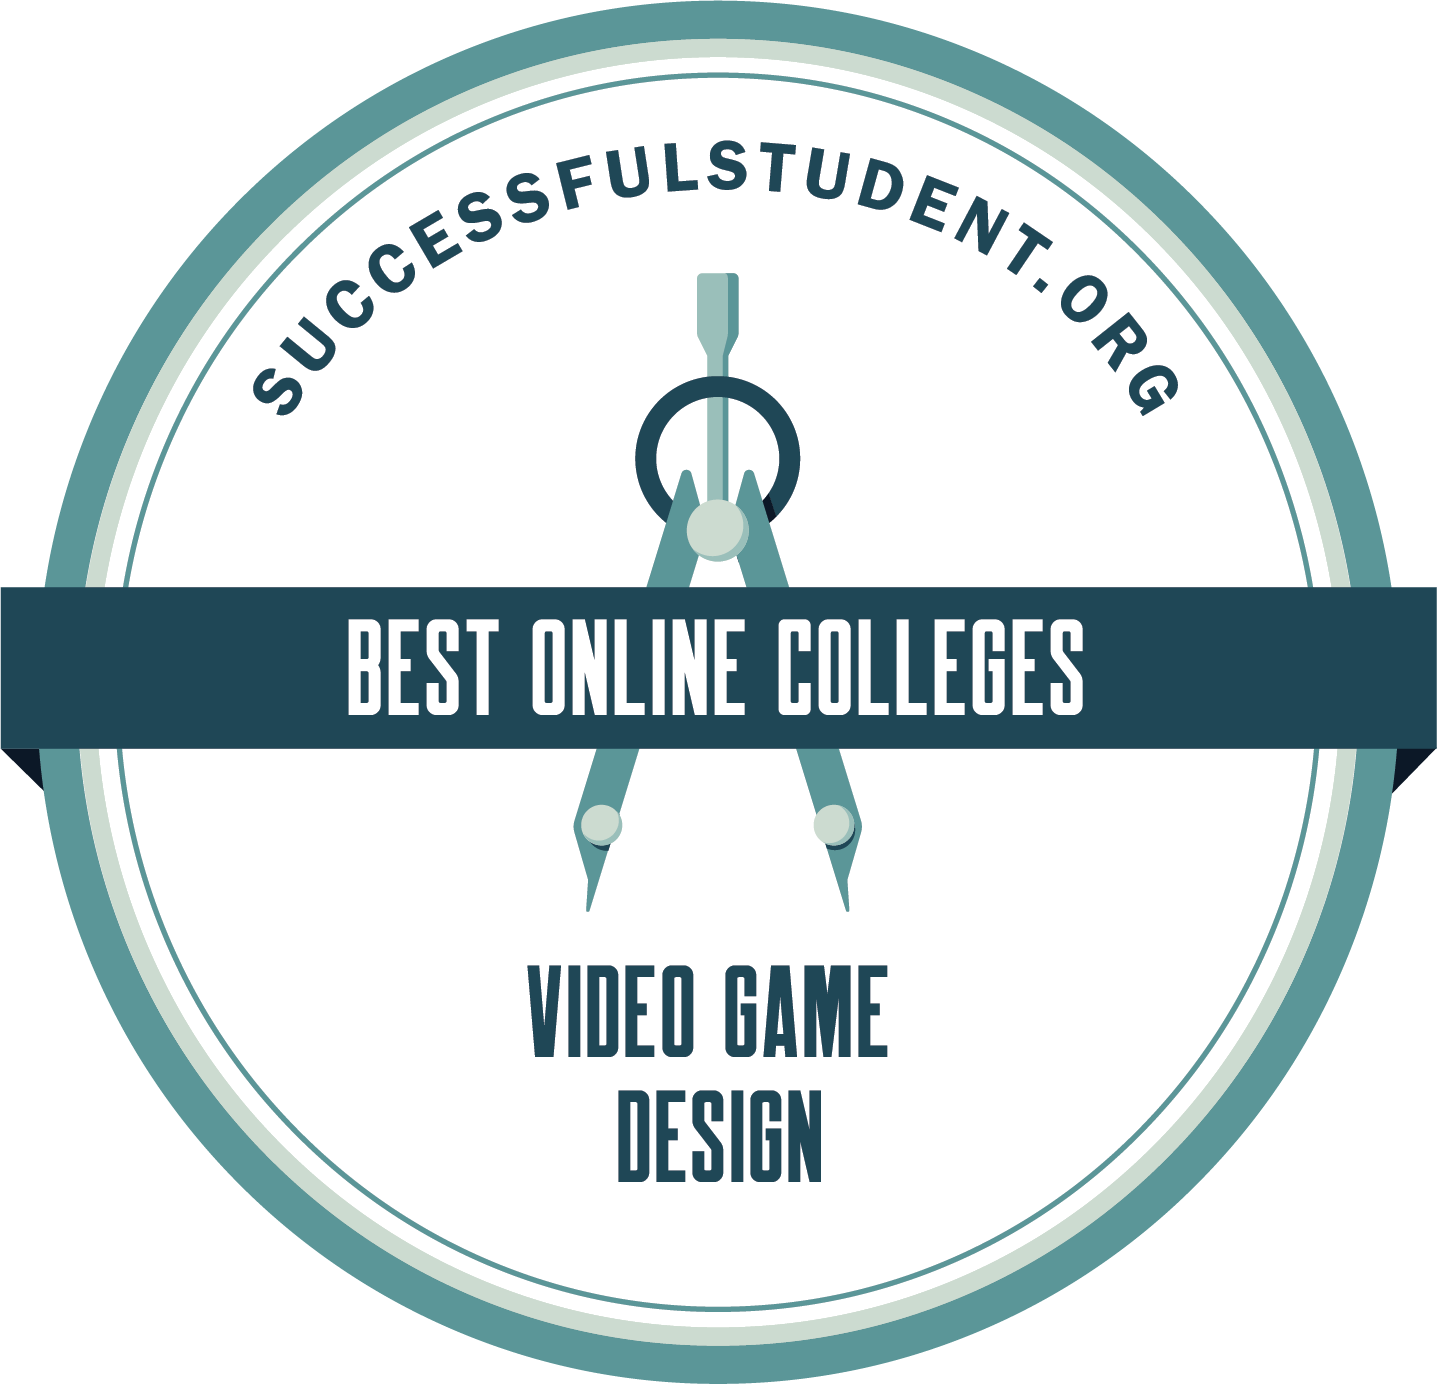 The 10 Best Online Video Game Design Colleges's Badge